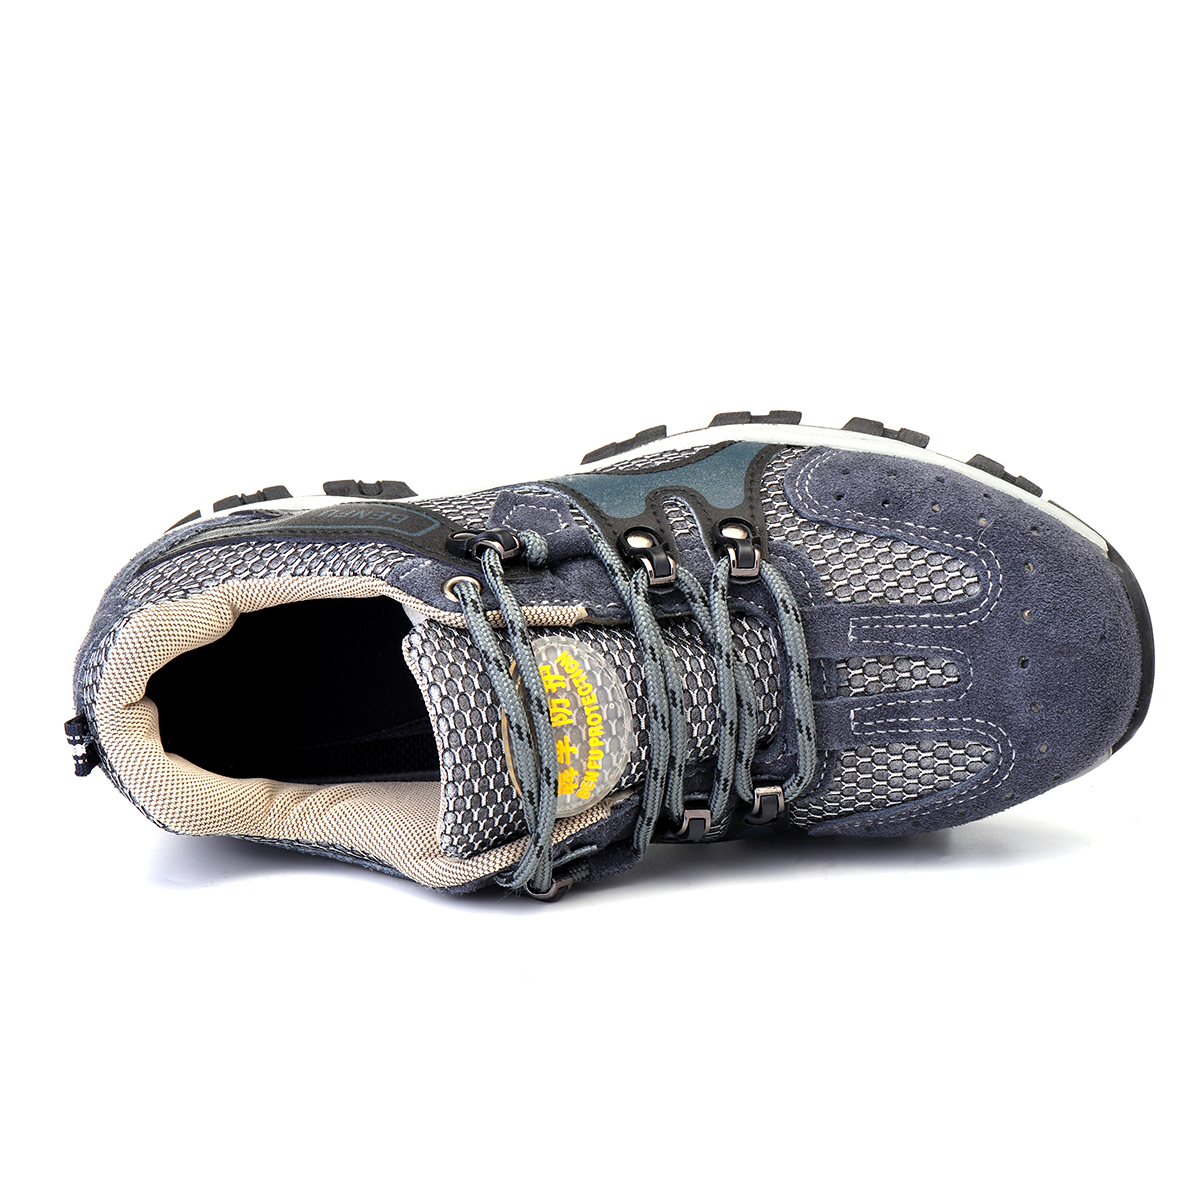 Men's Safety Shoes Steel Toe Work Sneakers Slip Resistant Breathable Hiking Climbing Shoes